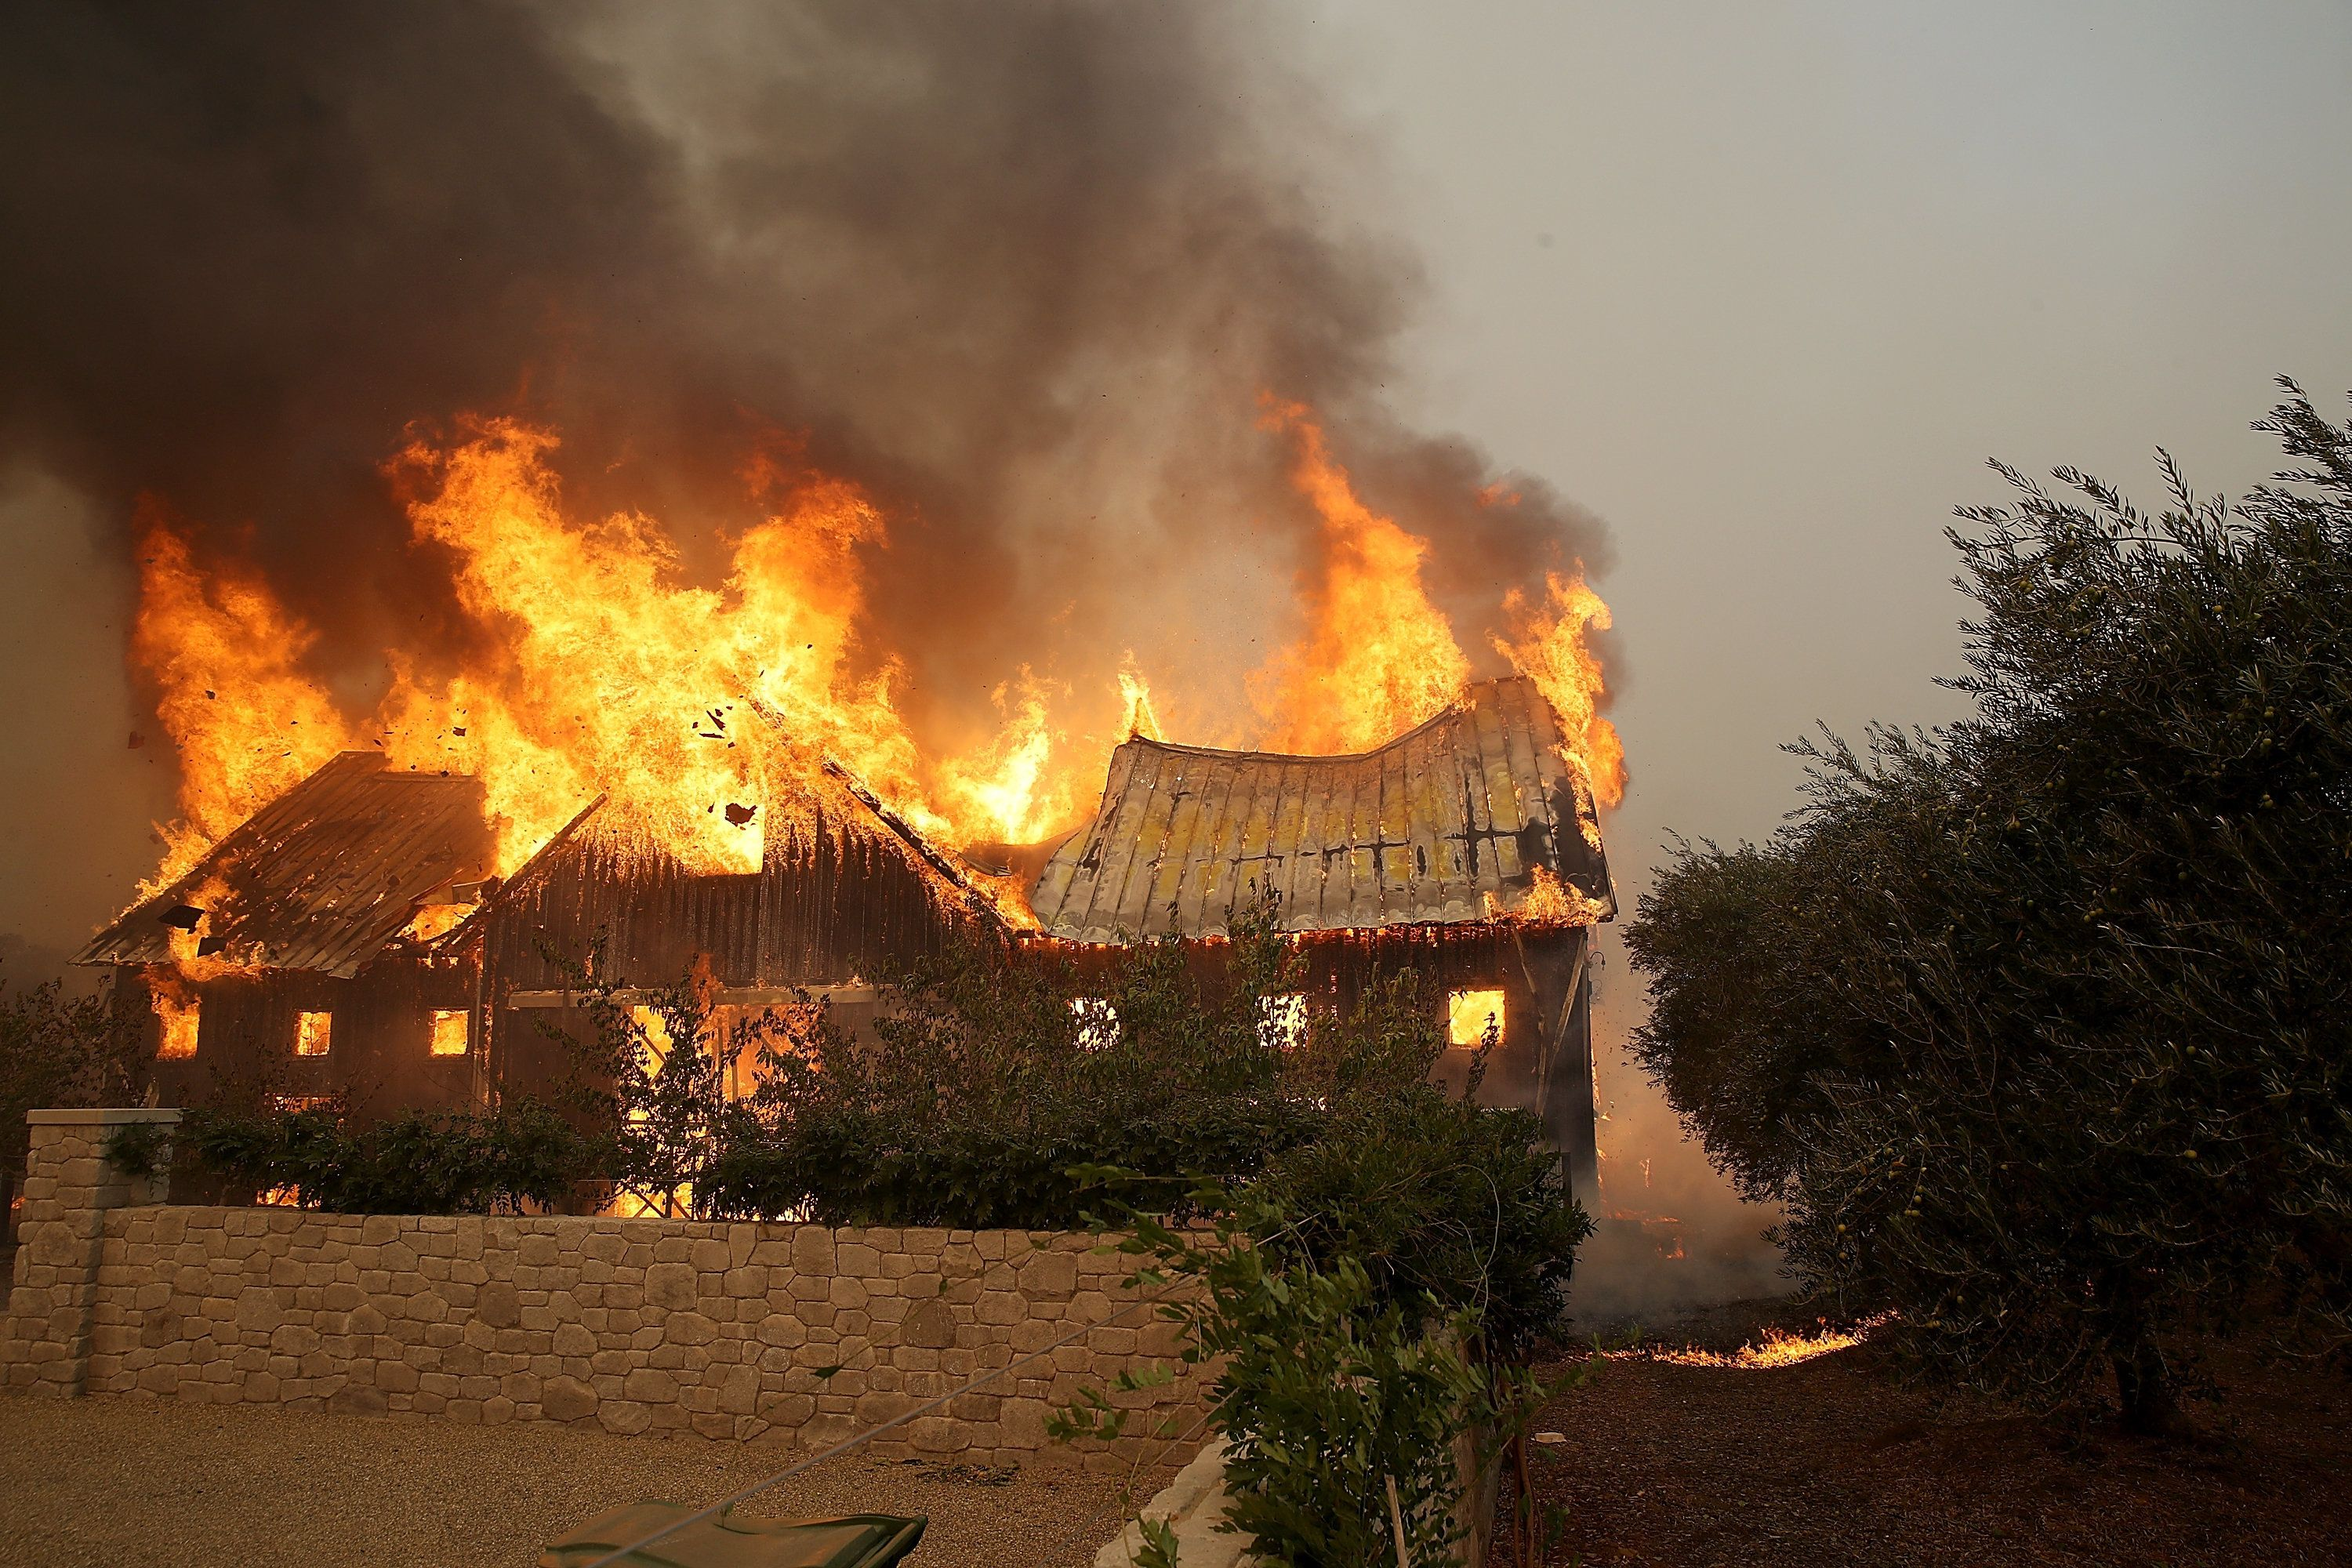 GLEN ELLEN, CA - OCTOBER 09:  Fire consumes a barn as an out of control wildfire moves through the area on October 9, 2017 in Glen Ellen, California. Tens of thousands of acres and dozens of homes and businesses have burned in widespread wildfires that are burning in Napa and Sonoma counties.  (Photo by Justin Sullivan/Getty Images)